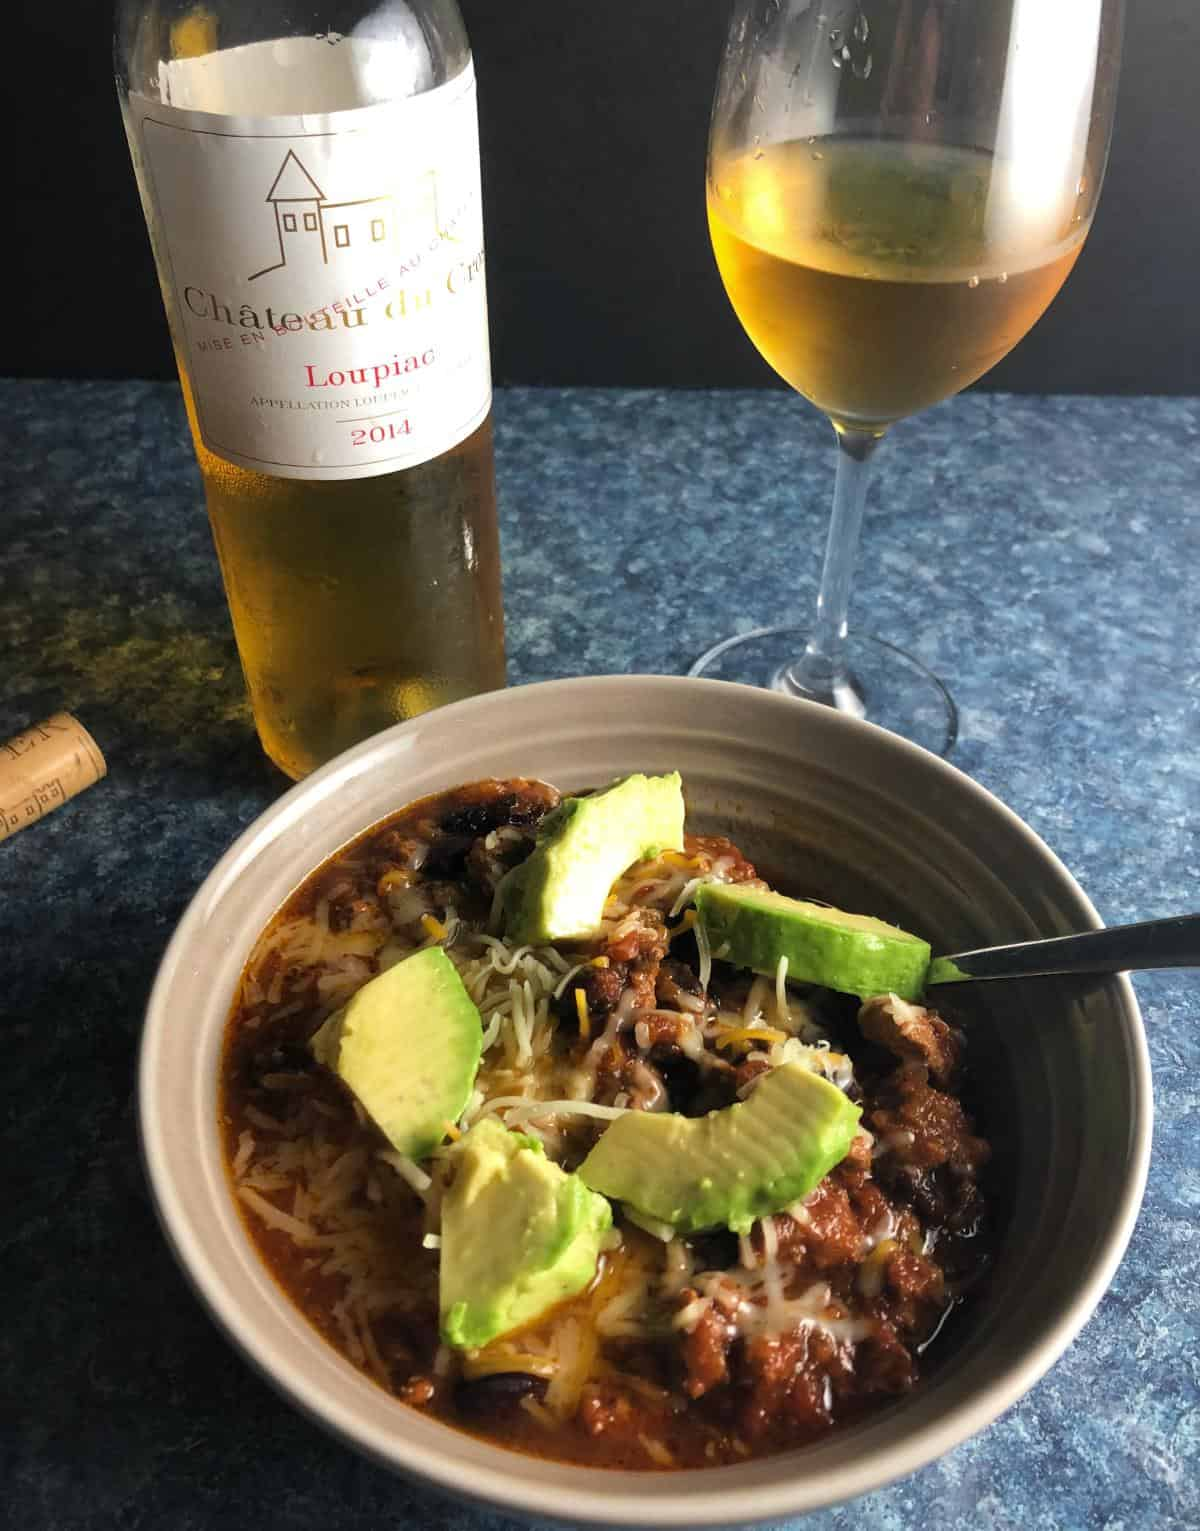 turkey chili paired with a sweet Bordeaux wine.